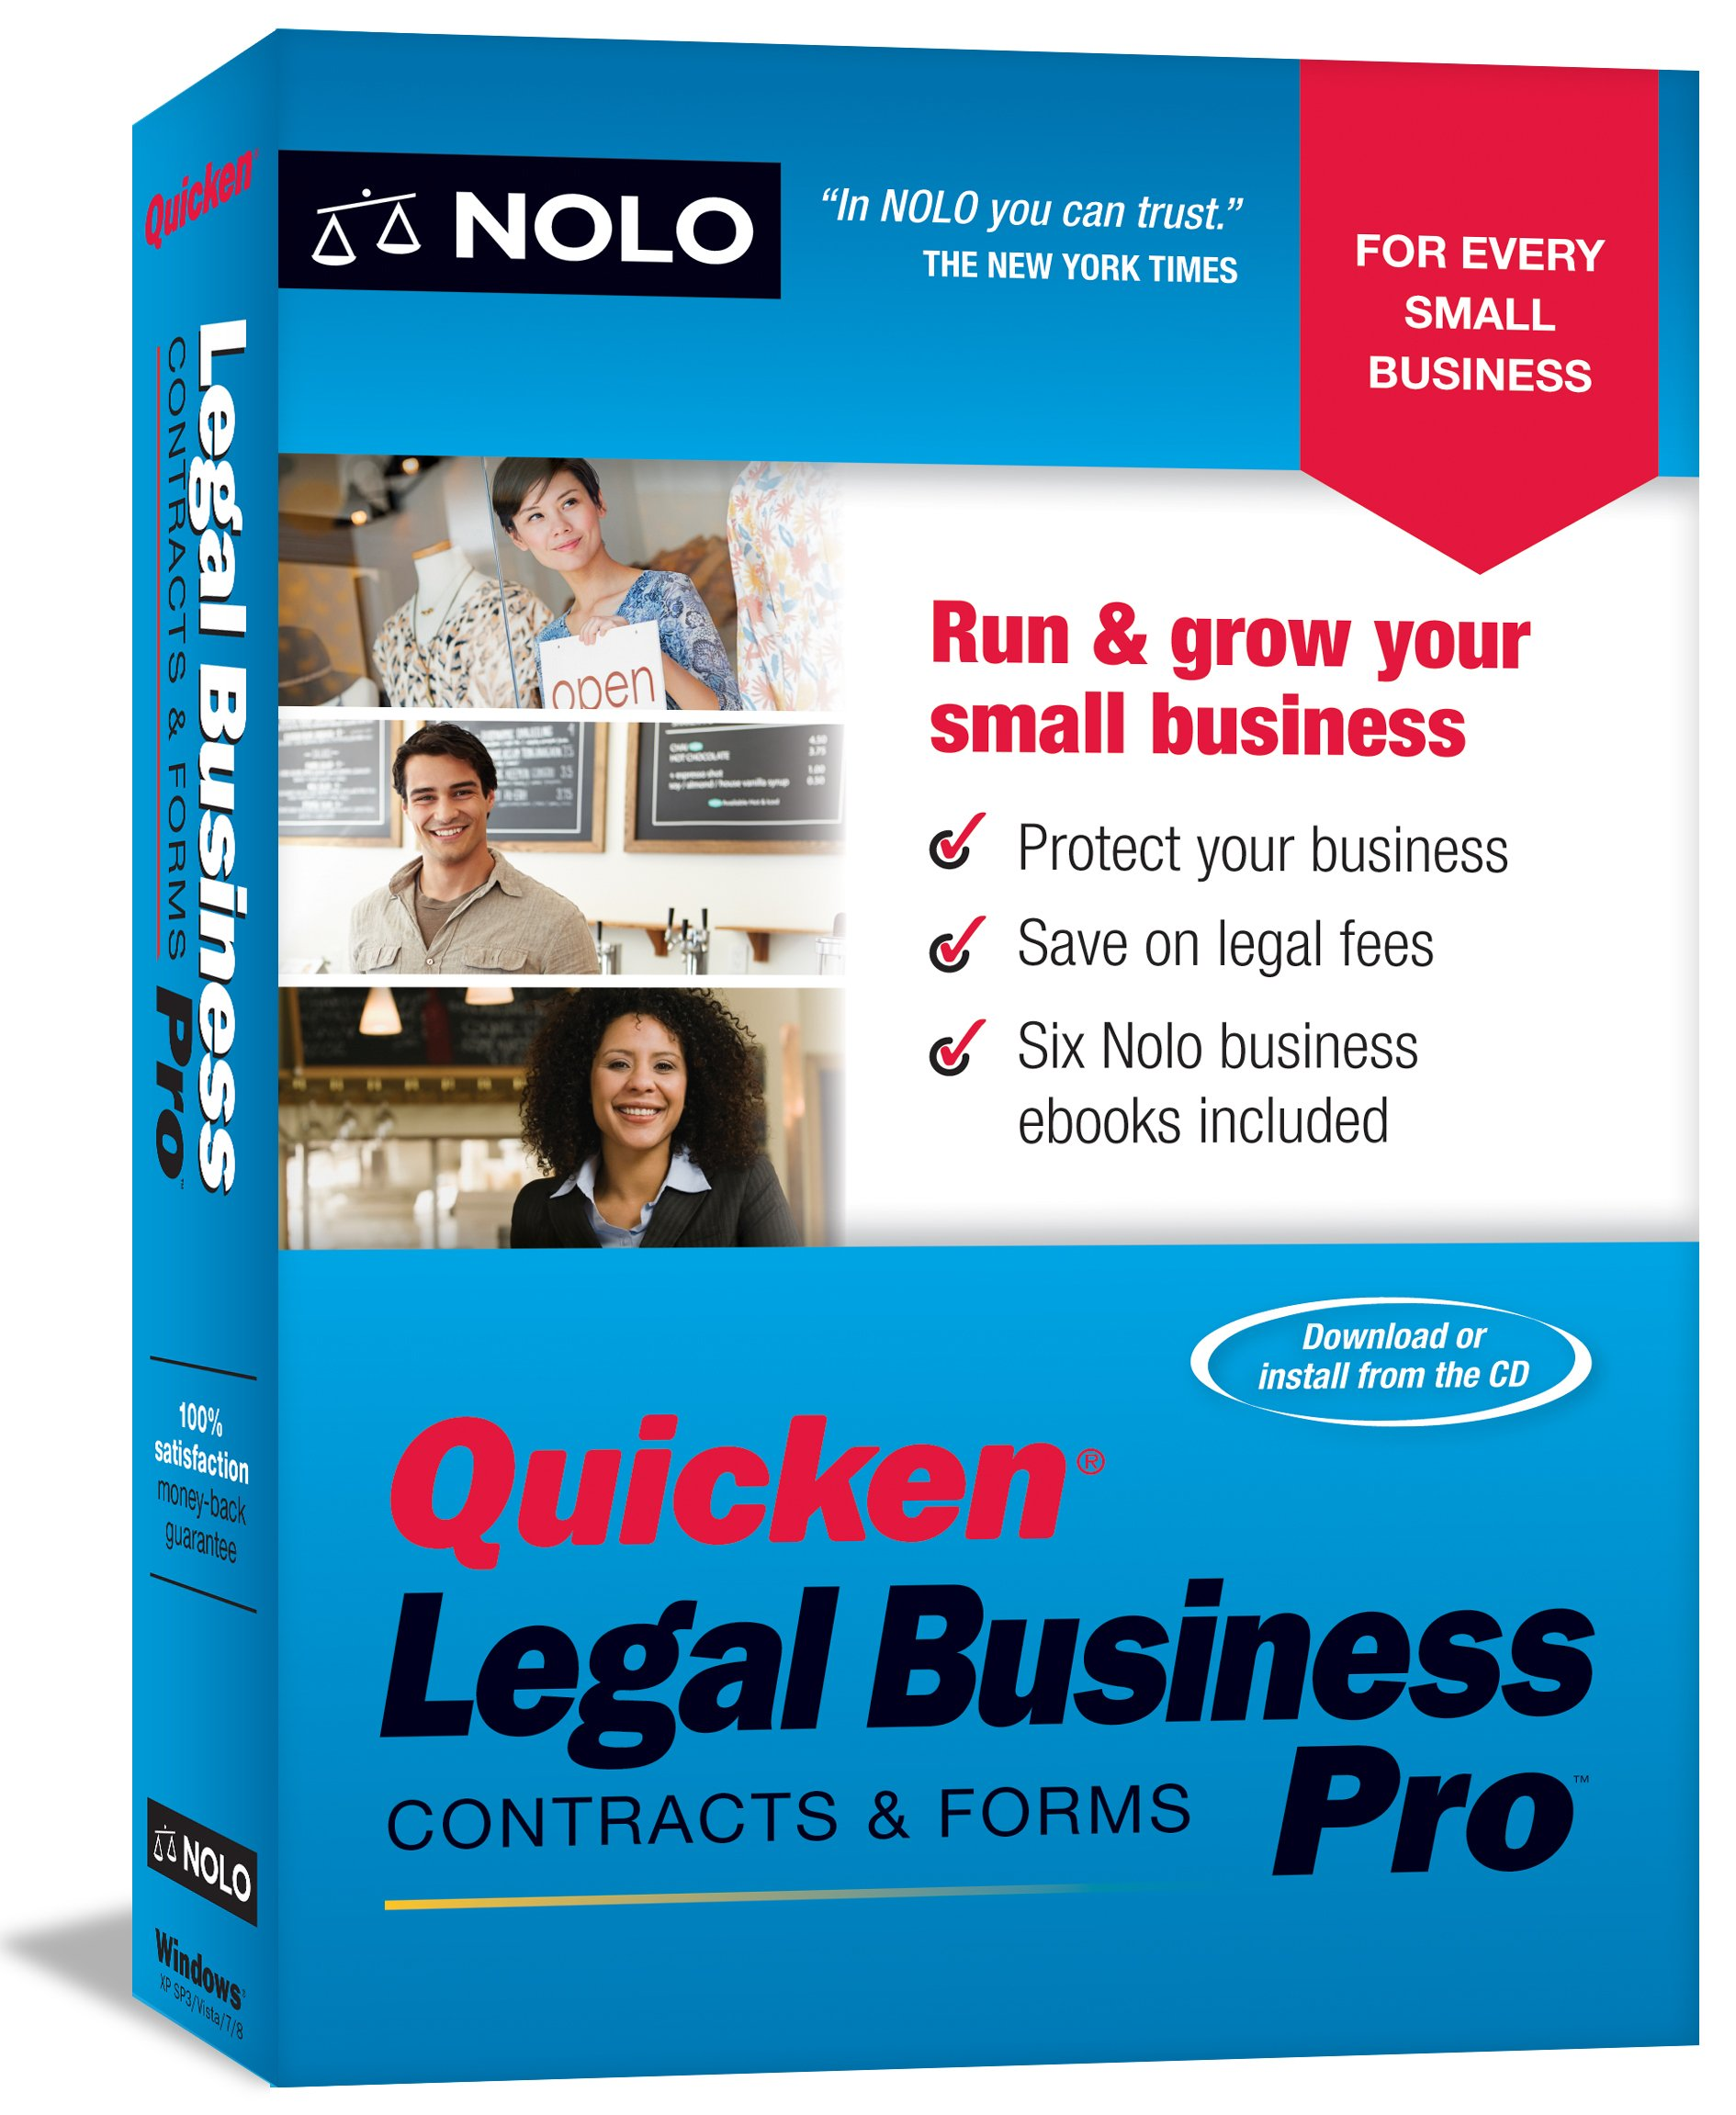 Quicken Legal Business Pro by NOLO